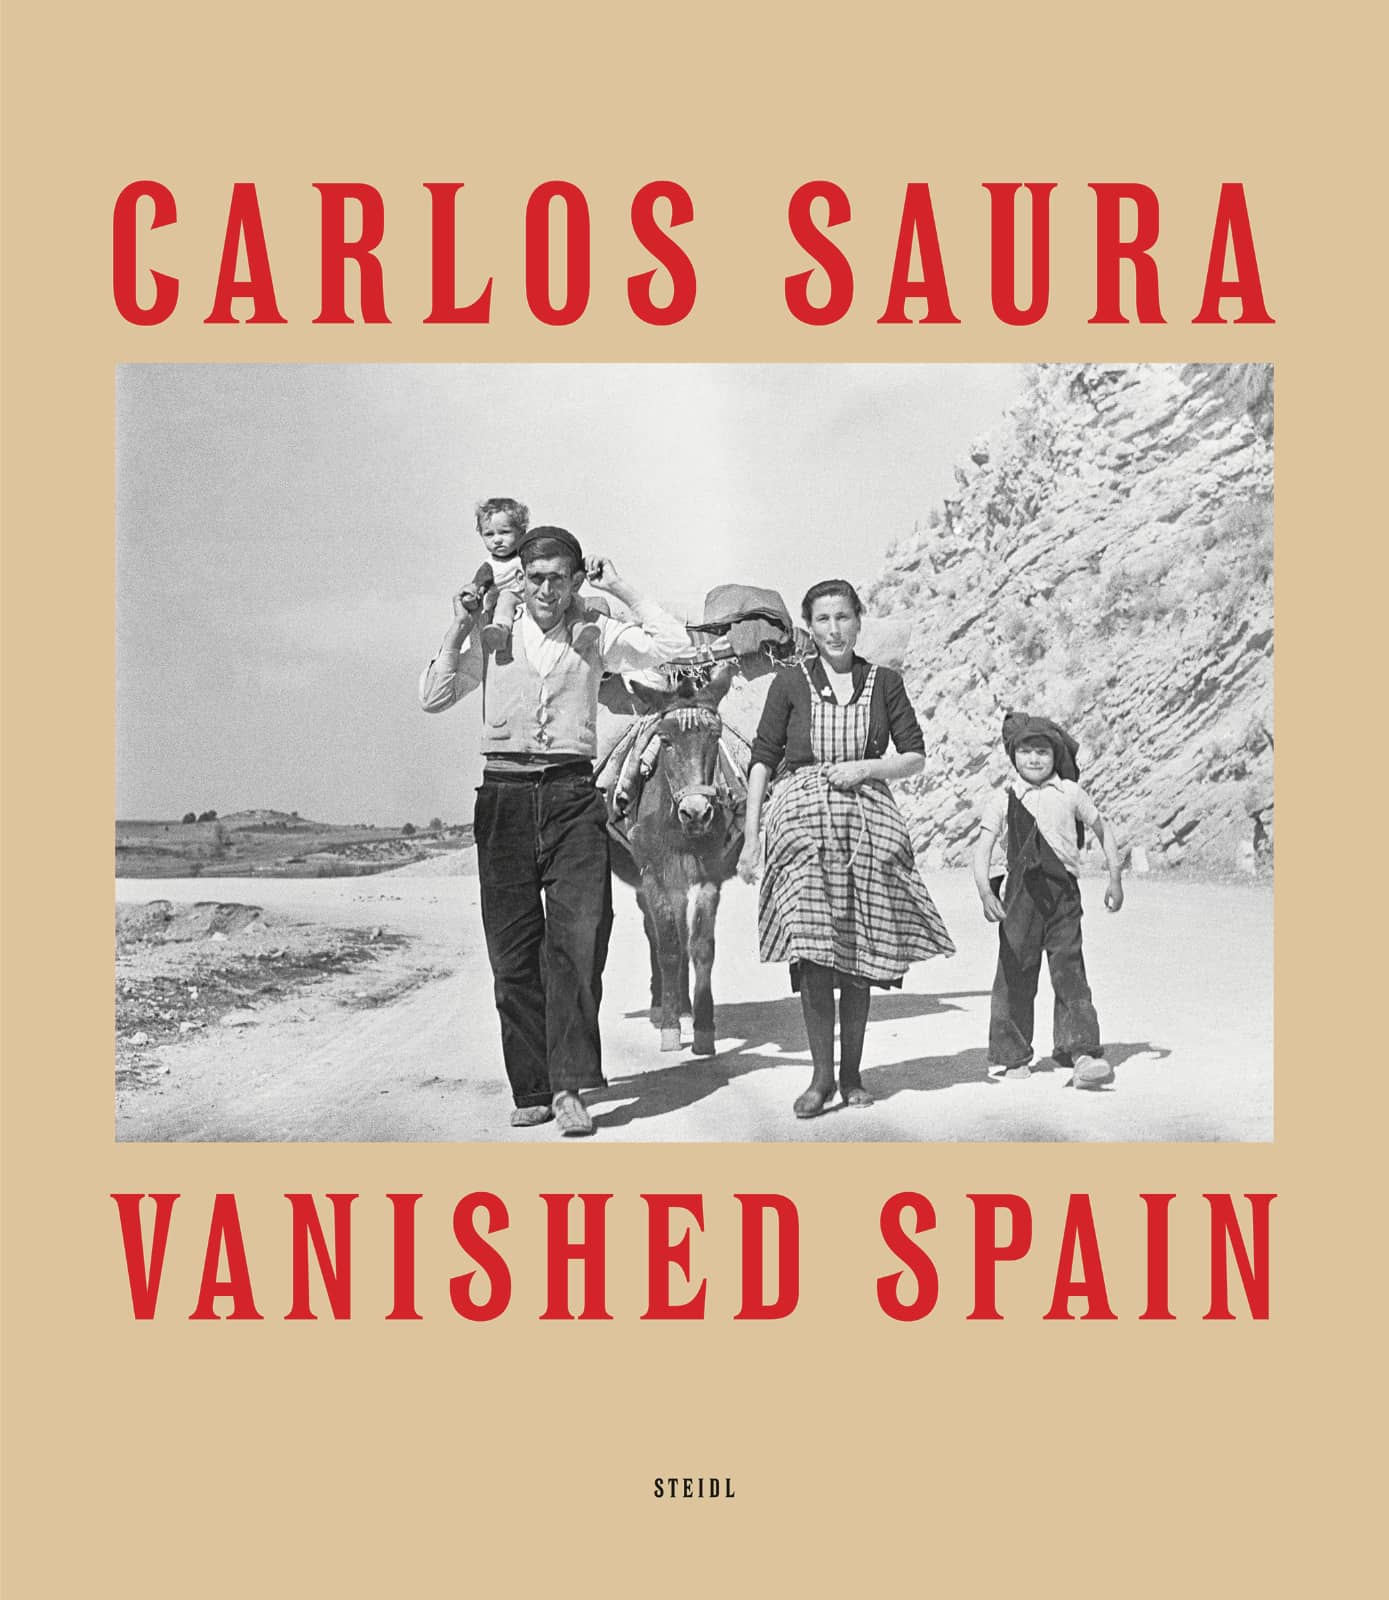 © Carlos Saura. Vanished Spain, 2016. Outstanding Contribution to Photography, Sony World Photography Awards 2020.